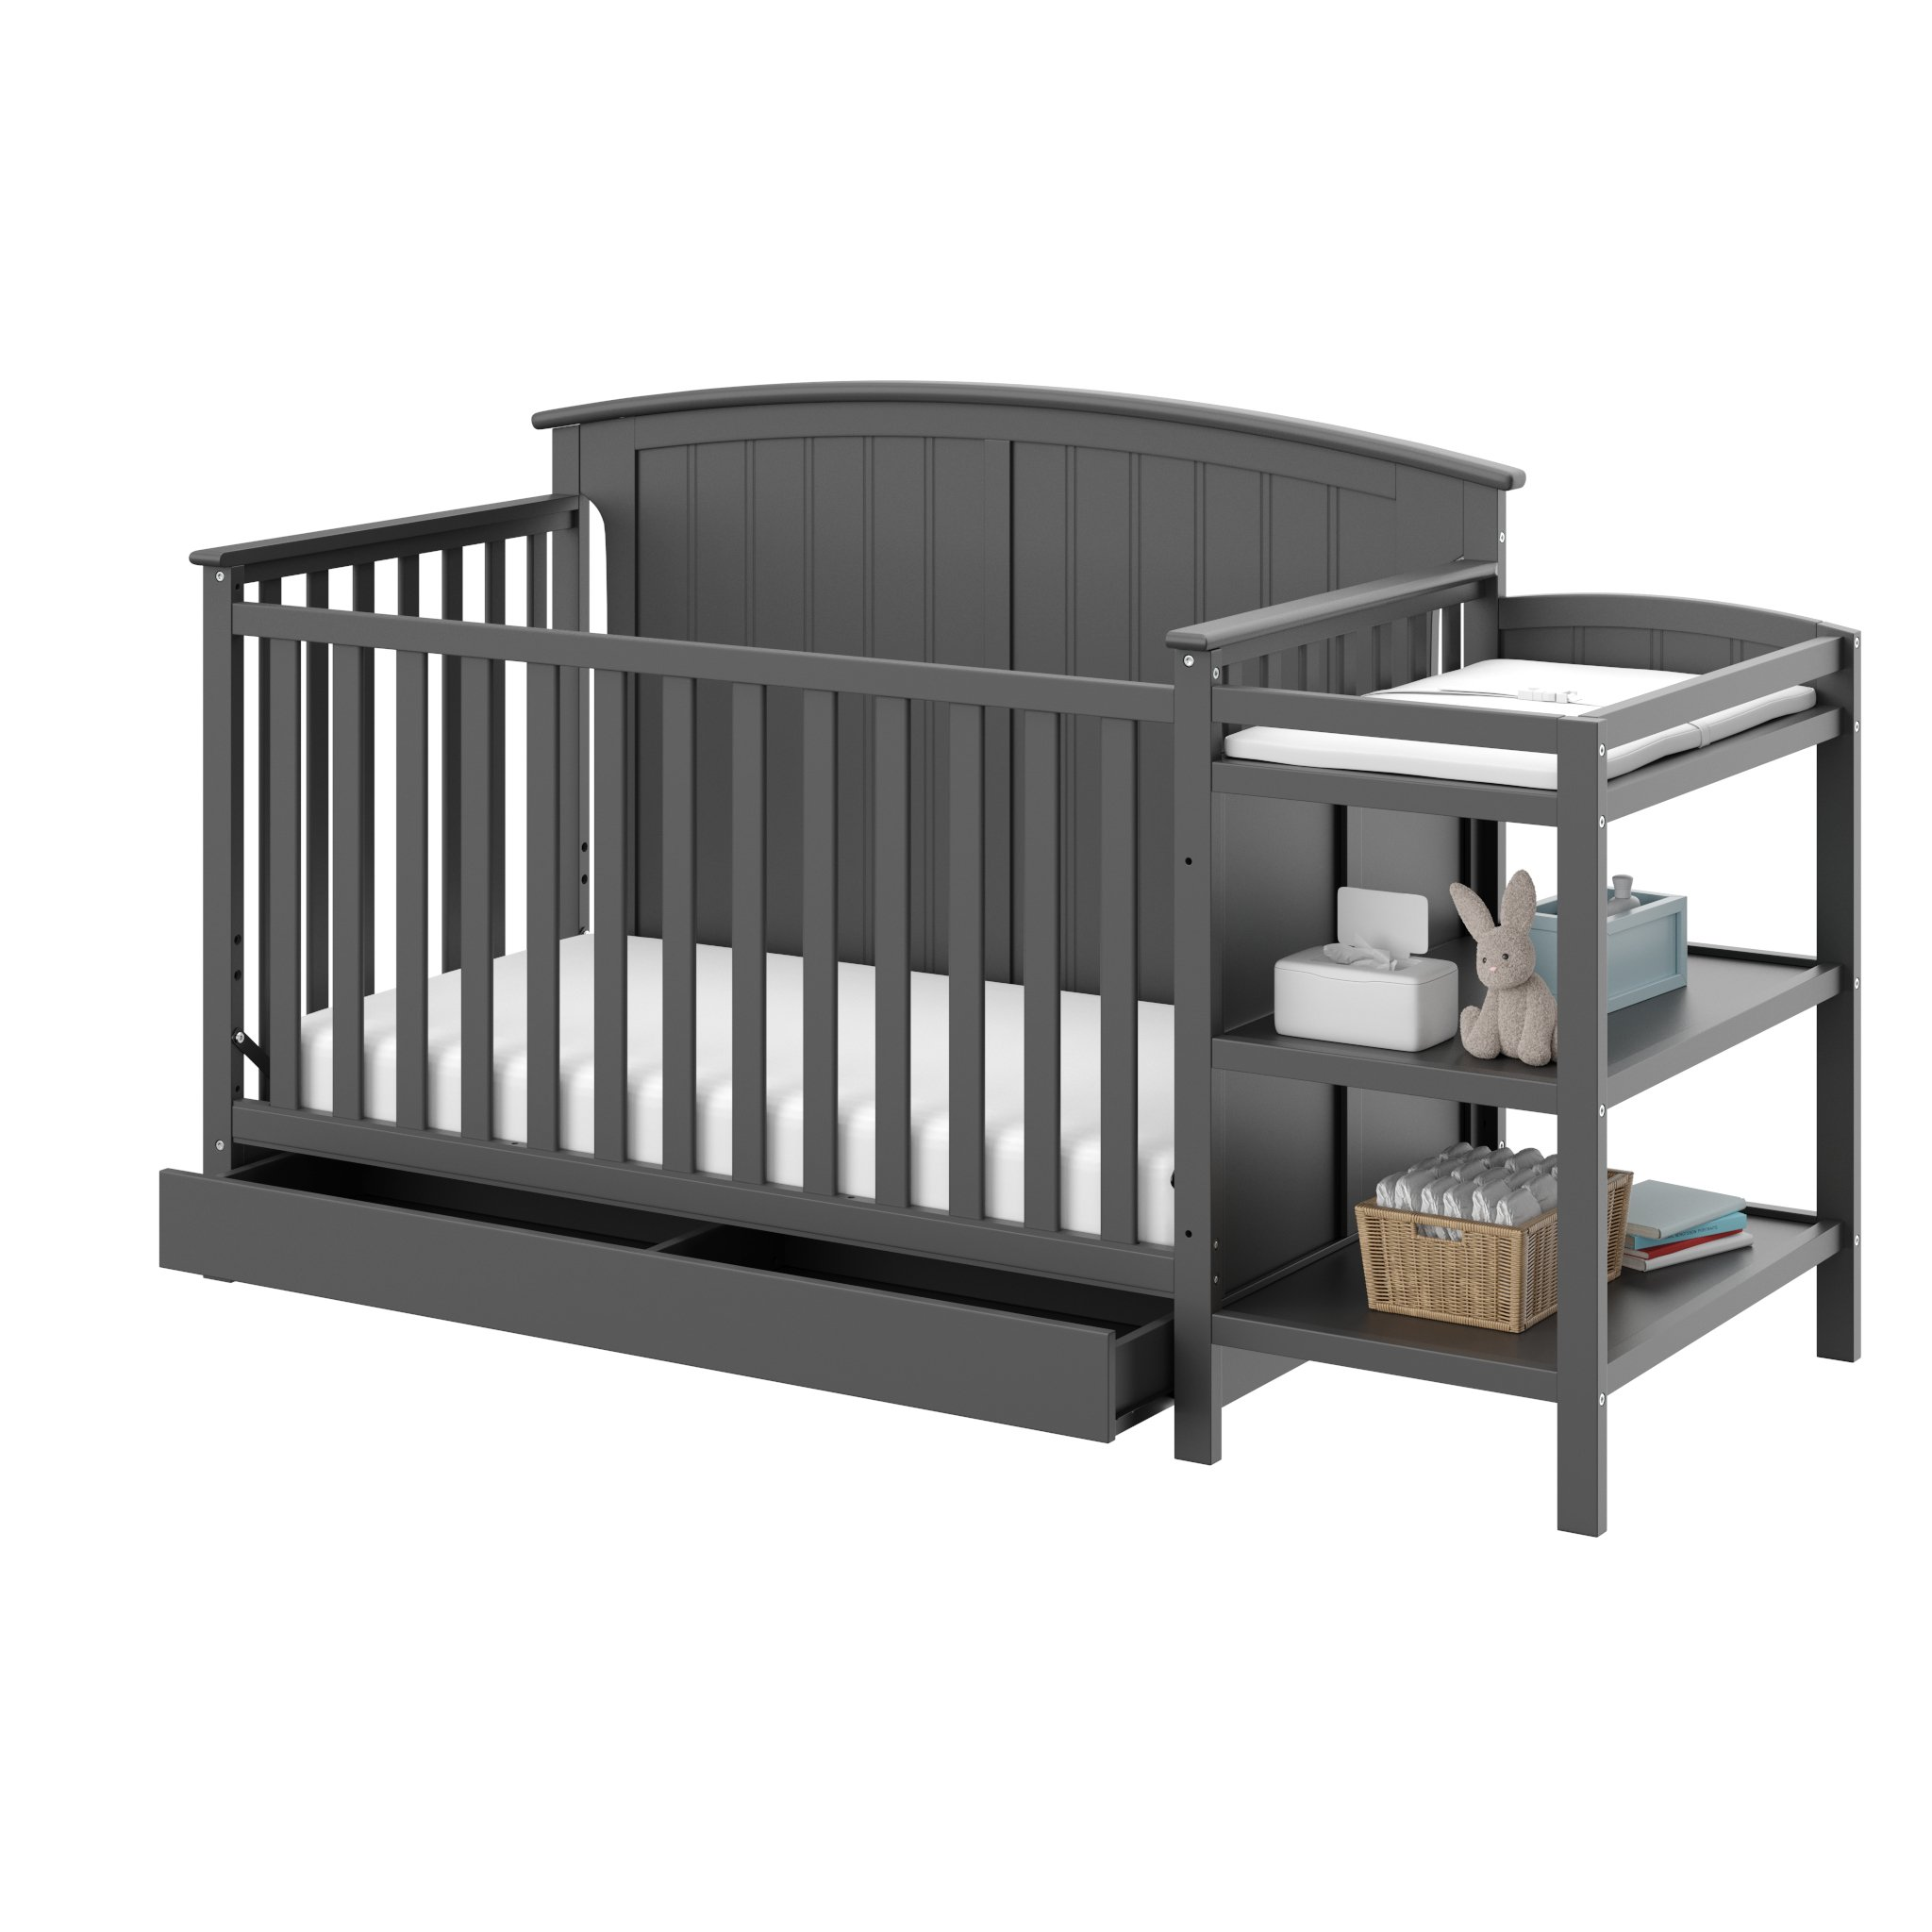 Storkcraft Steveston 4-IN-1 Convertible Crib and Changer with Drawer, Gray Easily Converts to Toddler Bed, Day Bed or Full Bed, 3 Position Adjustable Height Mattress by Storkcraft